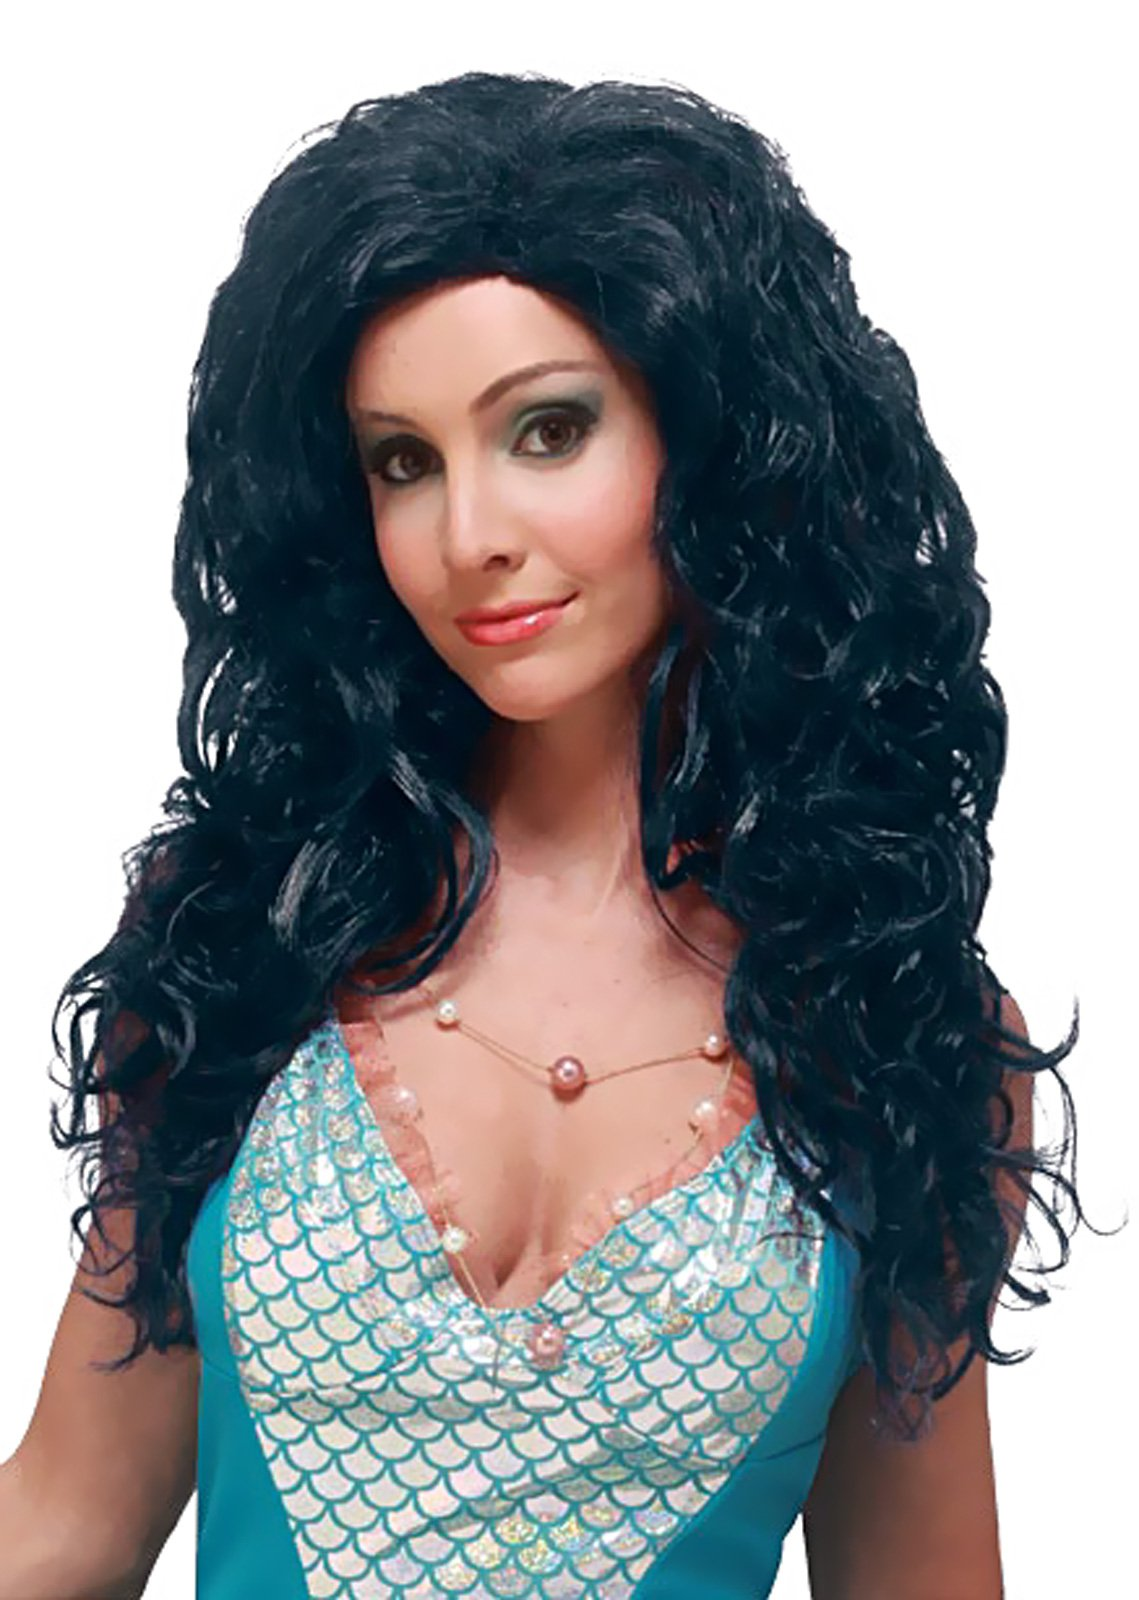 Aqua Bella (Black) Adult Wig